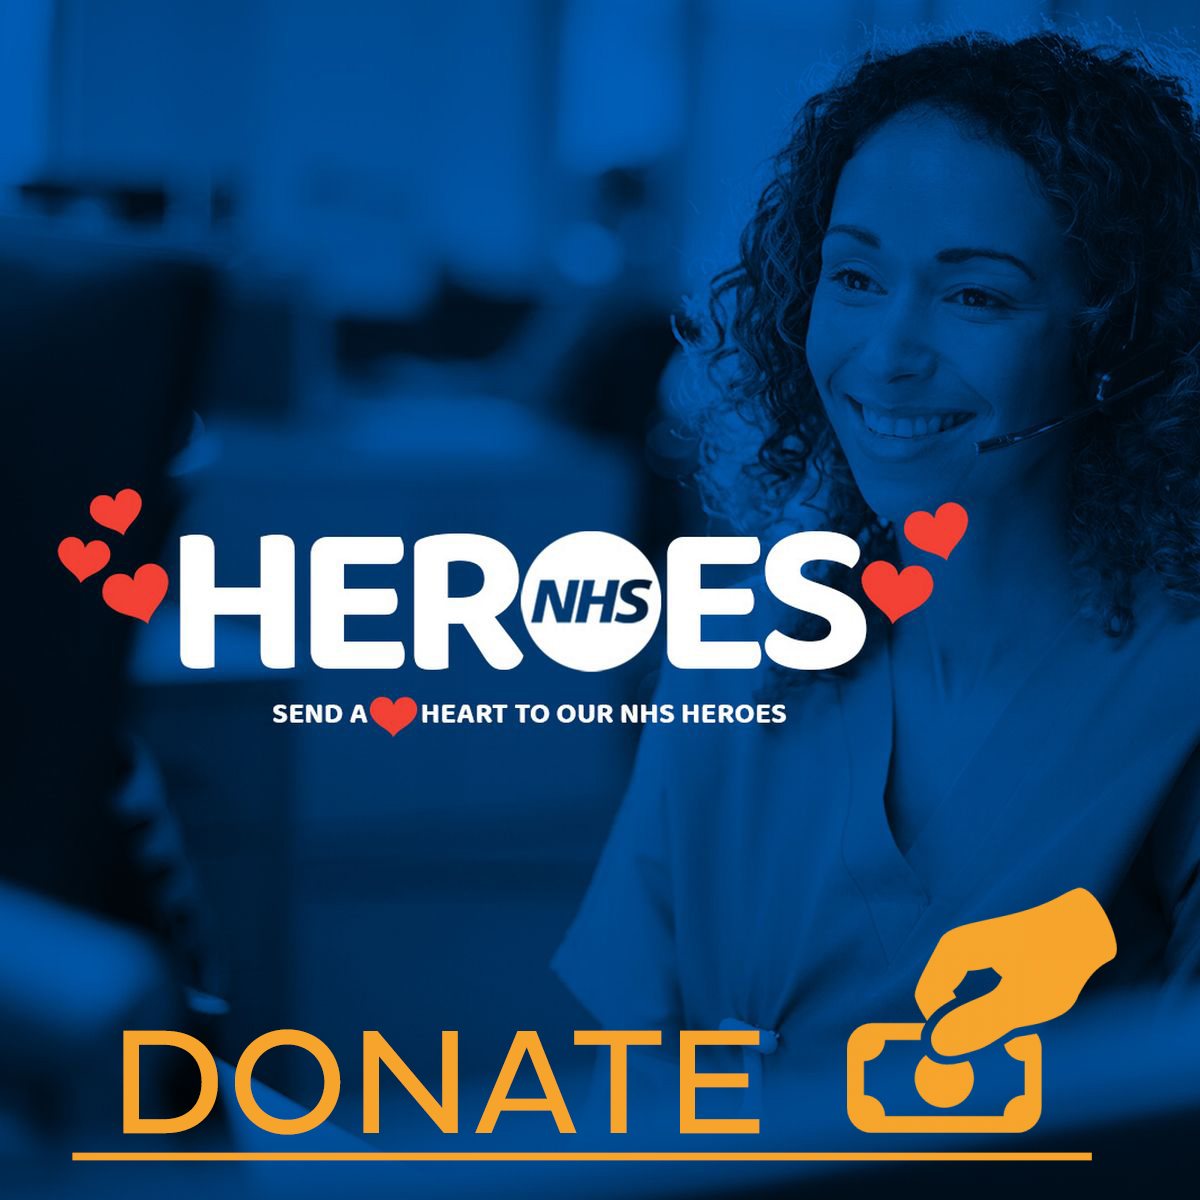 Make donation to WAKIKI's Love NHS Heroes campaign